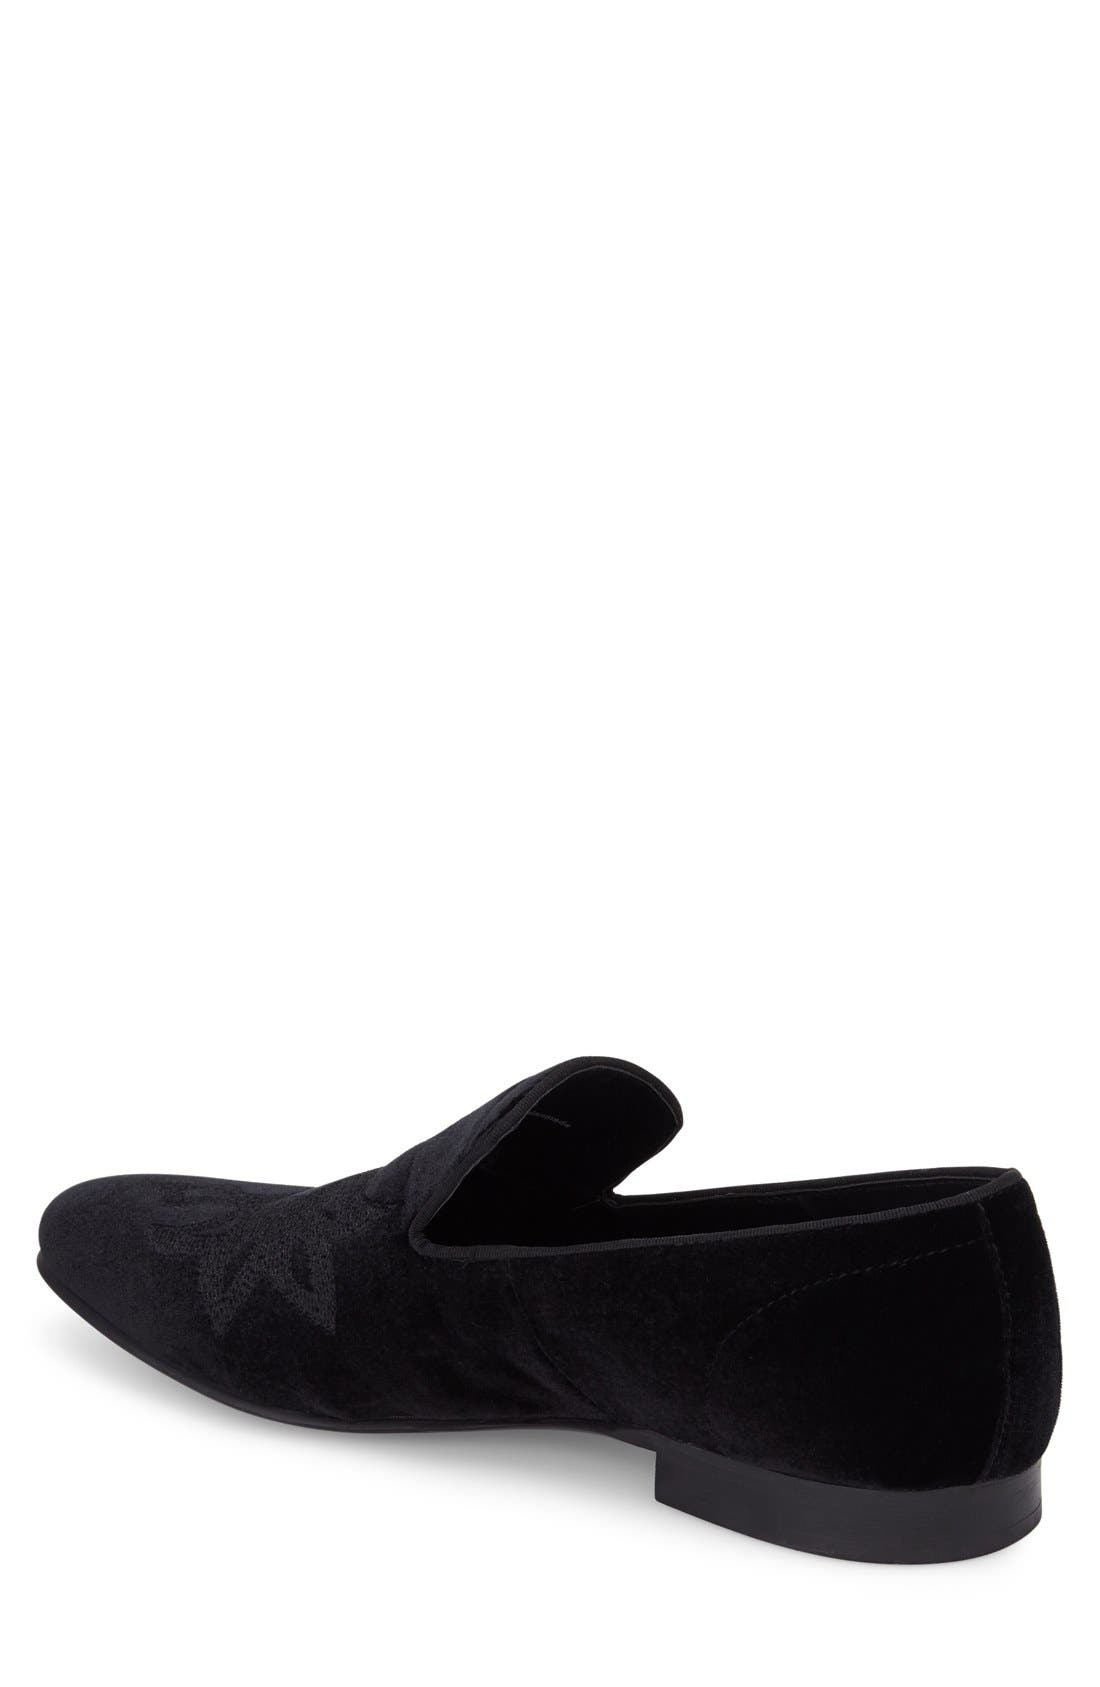 Lorax Venetian Loafer,                             Alternate thumbnail 2, color,                             BLACK VELVET